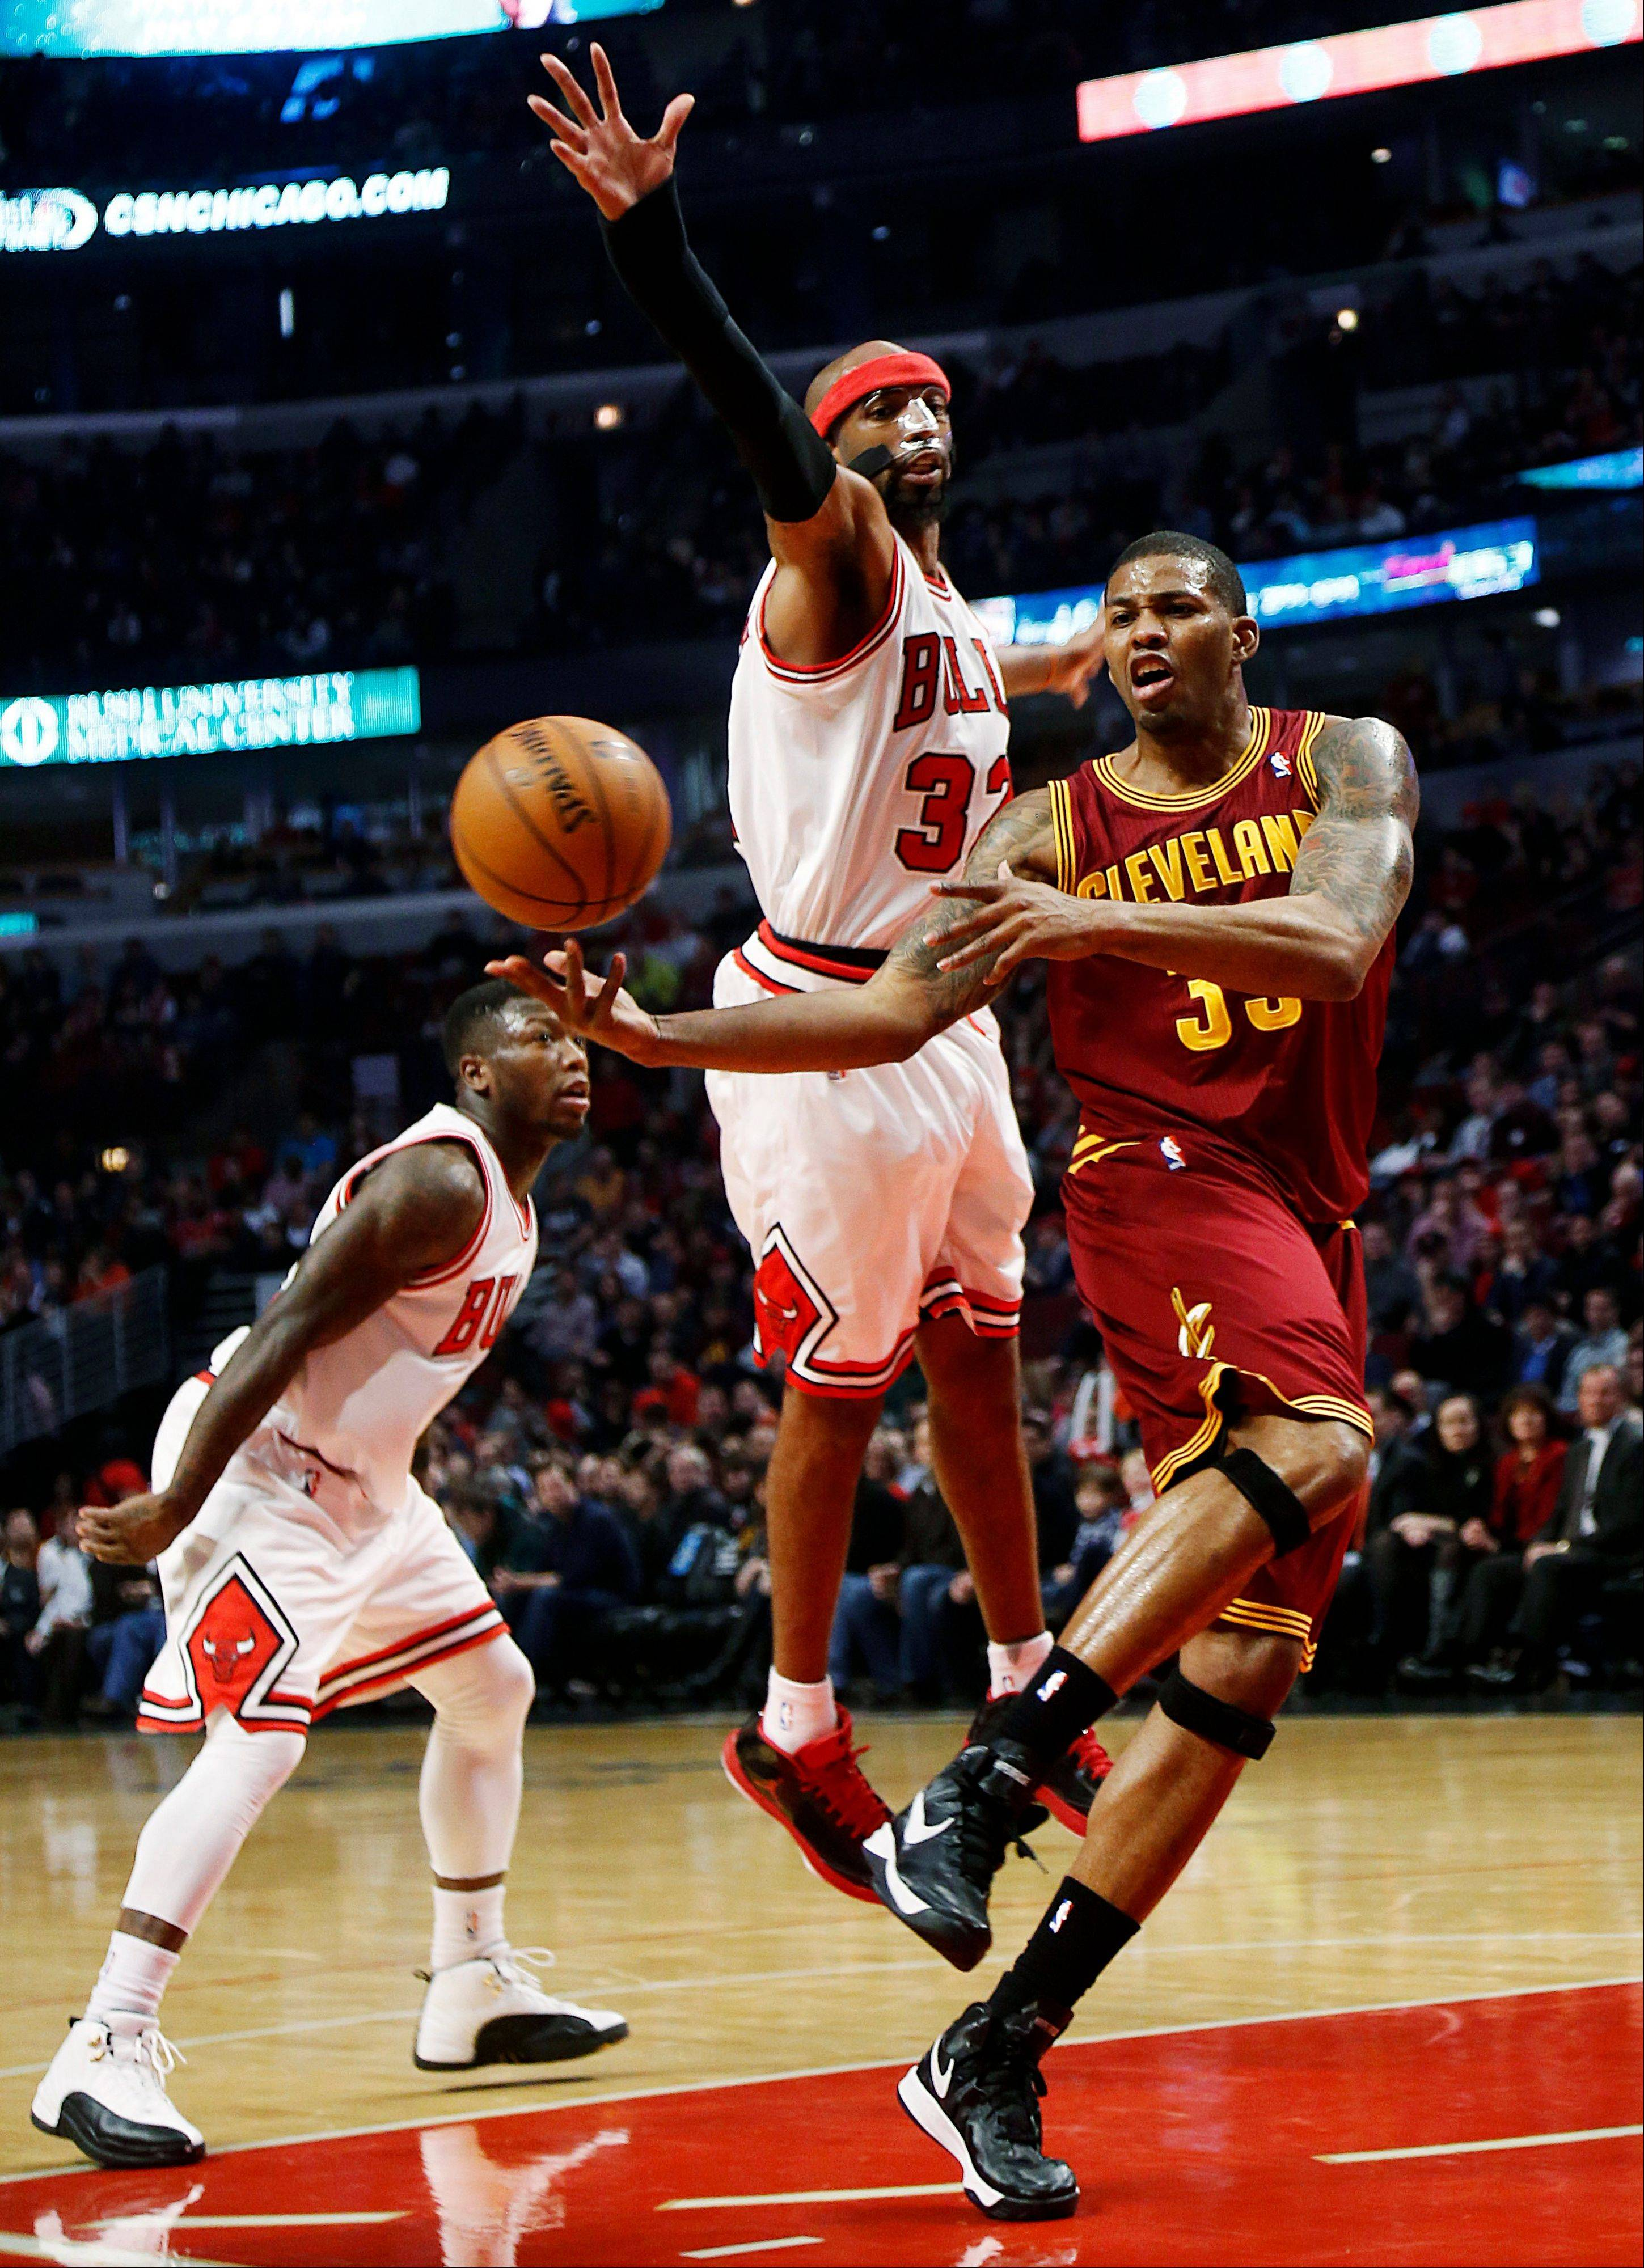 Cleveland Cavaliers� Alonzo Gee, right, makes a pass while being defended by Chicago Bulls� Richard Hamilton during the second quarter of their NBA basketball game, Tuesday, Feb. 26, 2013, in Chicago. (AP Photo/Charles Cherney)